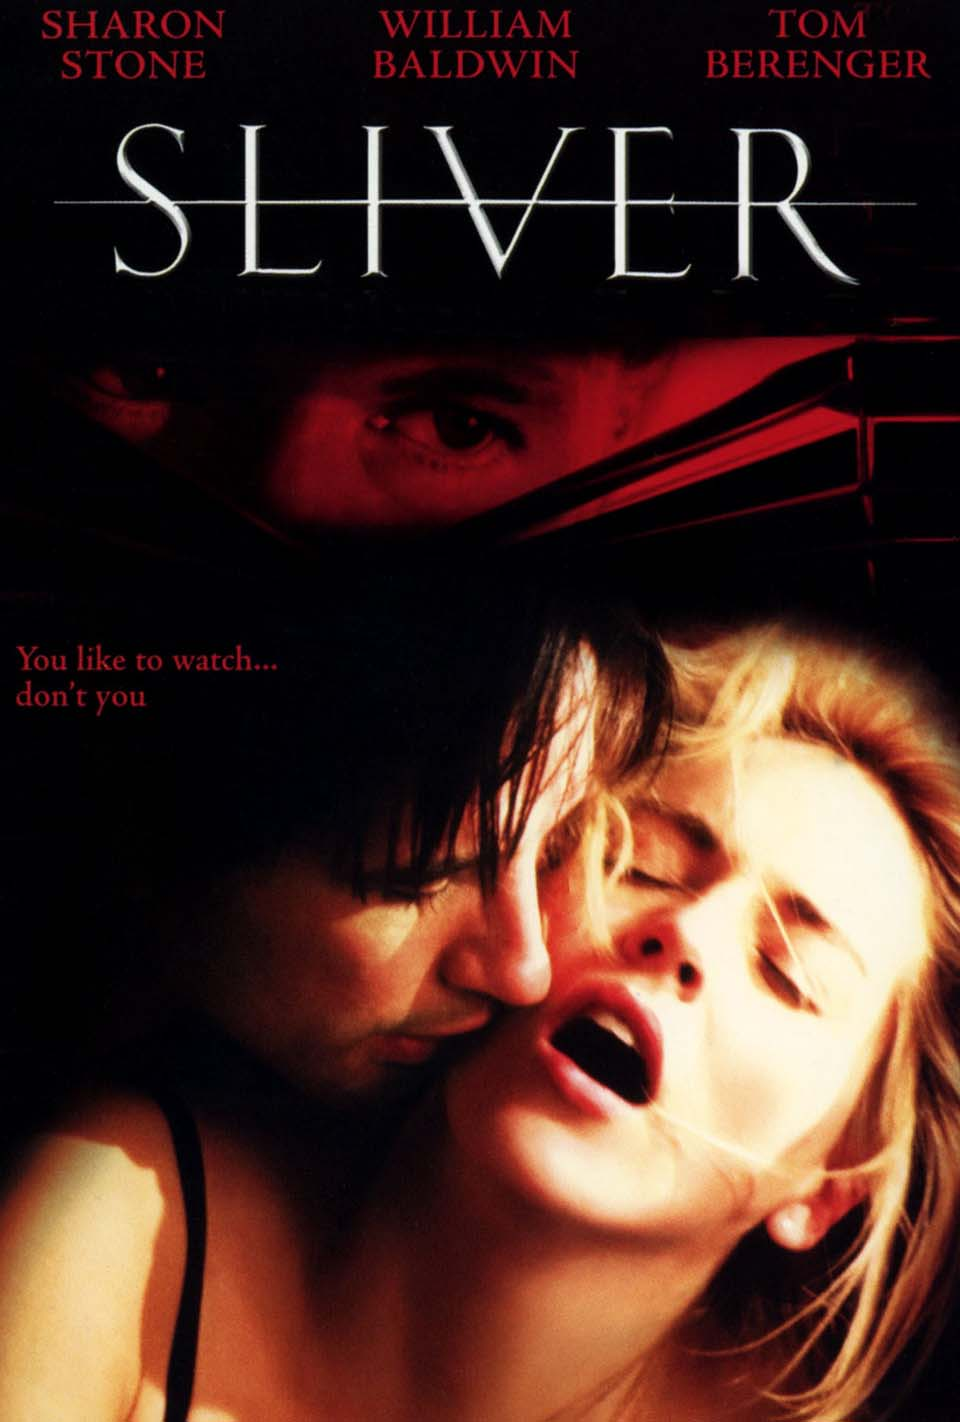 Sliver (Sharon Stone) Full Movie Free Online